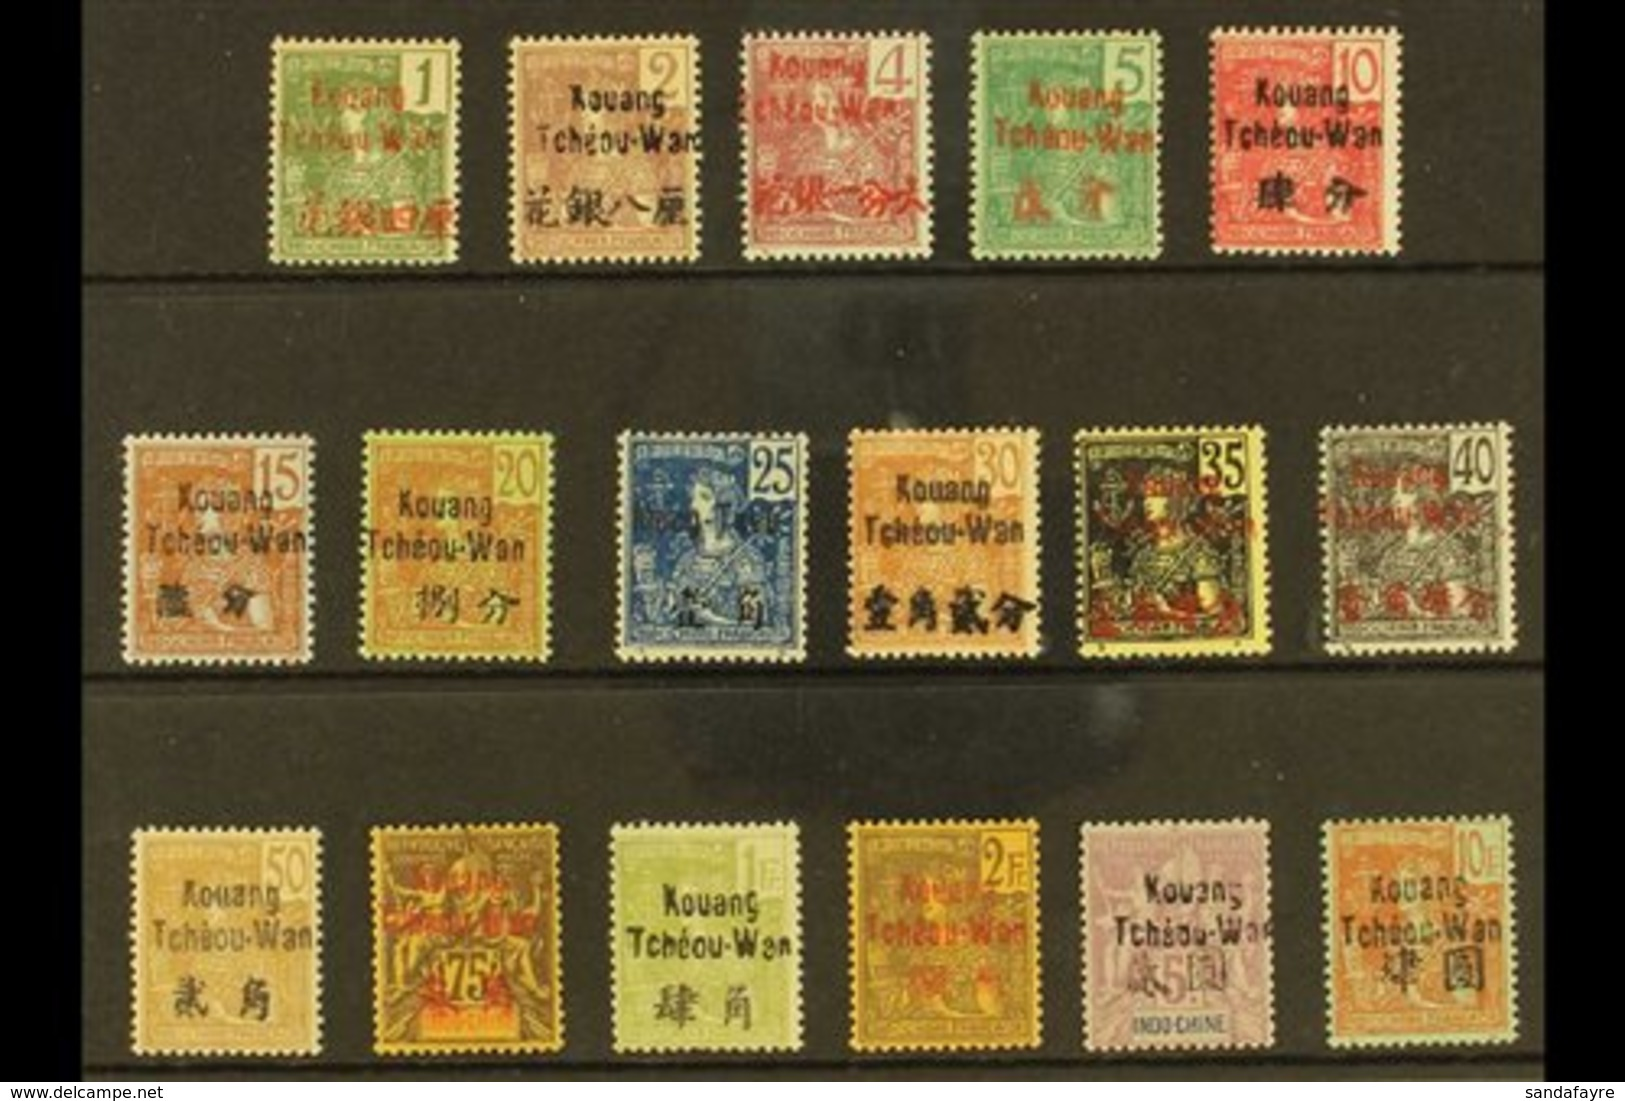 """KOUANG-TCHEOU 1906 """"Kouang Tcheou-Wan"""" Overprints, Complete Set, Yvert 1/17, SG 1/17, Very Fine Mint, 5f & 10f Expertise - France (former Colonies & Protectorates)"""